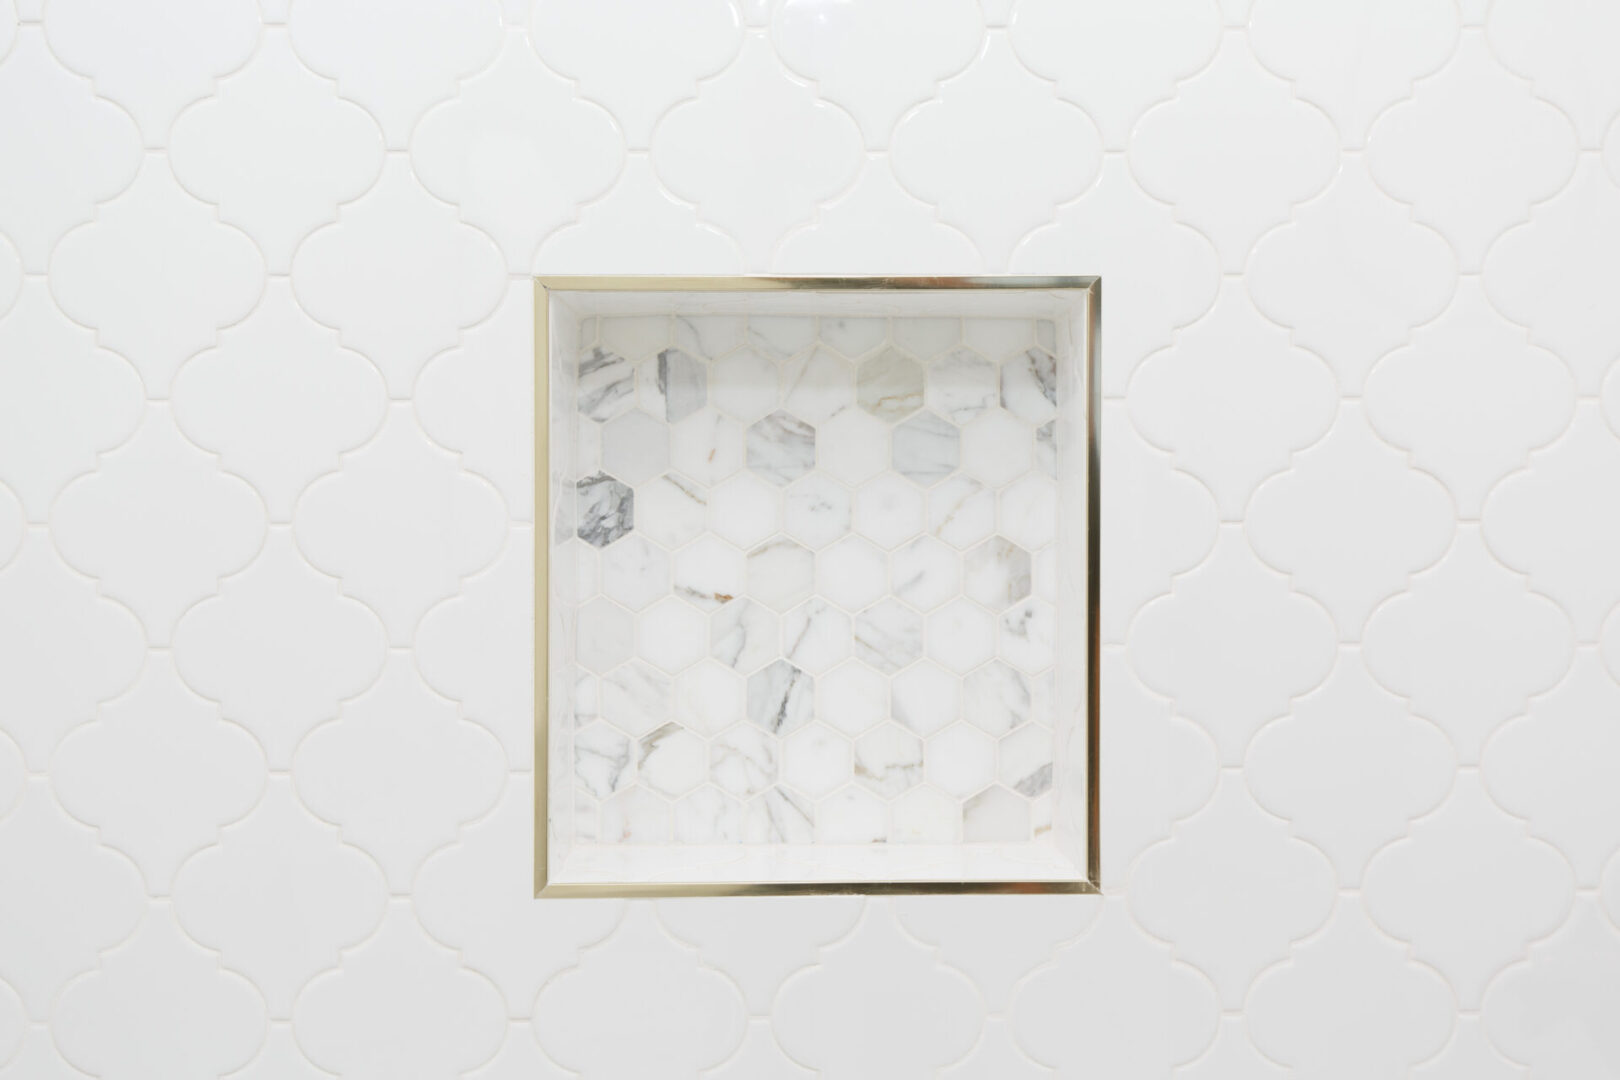 square hole in a bathroom wall with hexagonal tiles